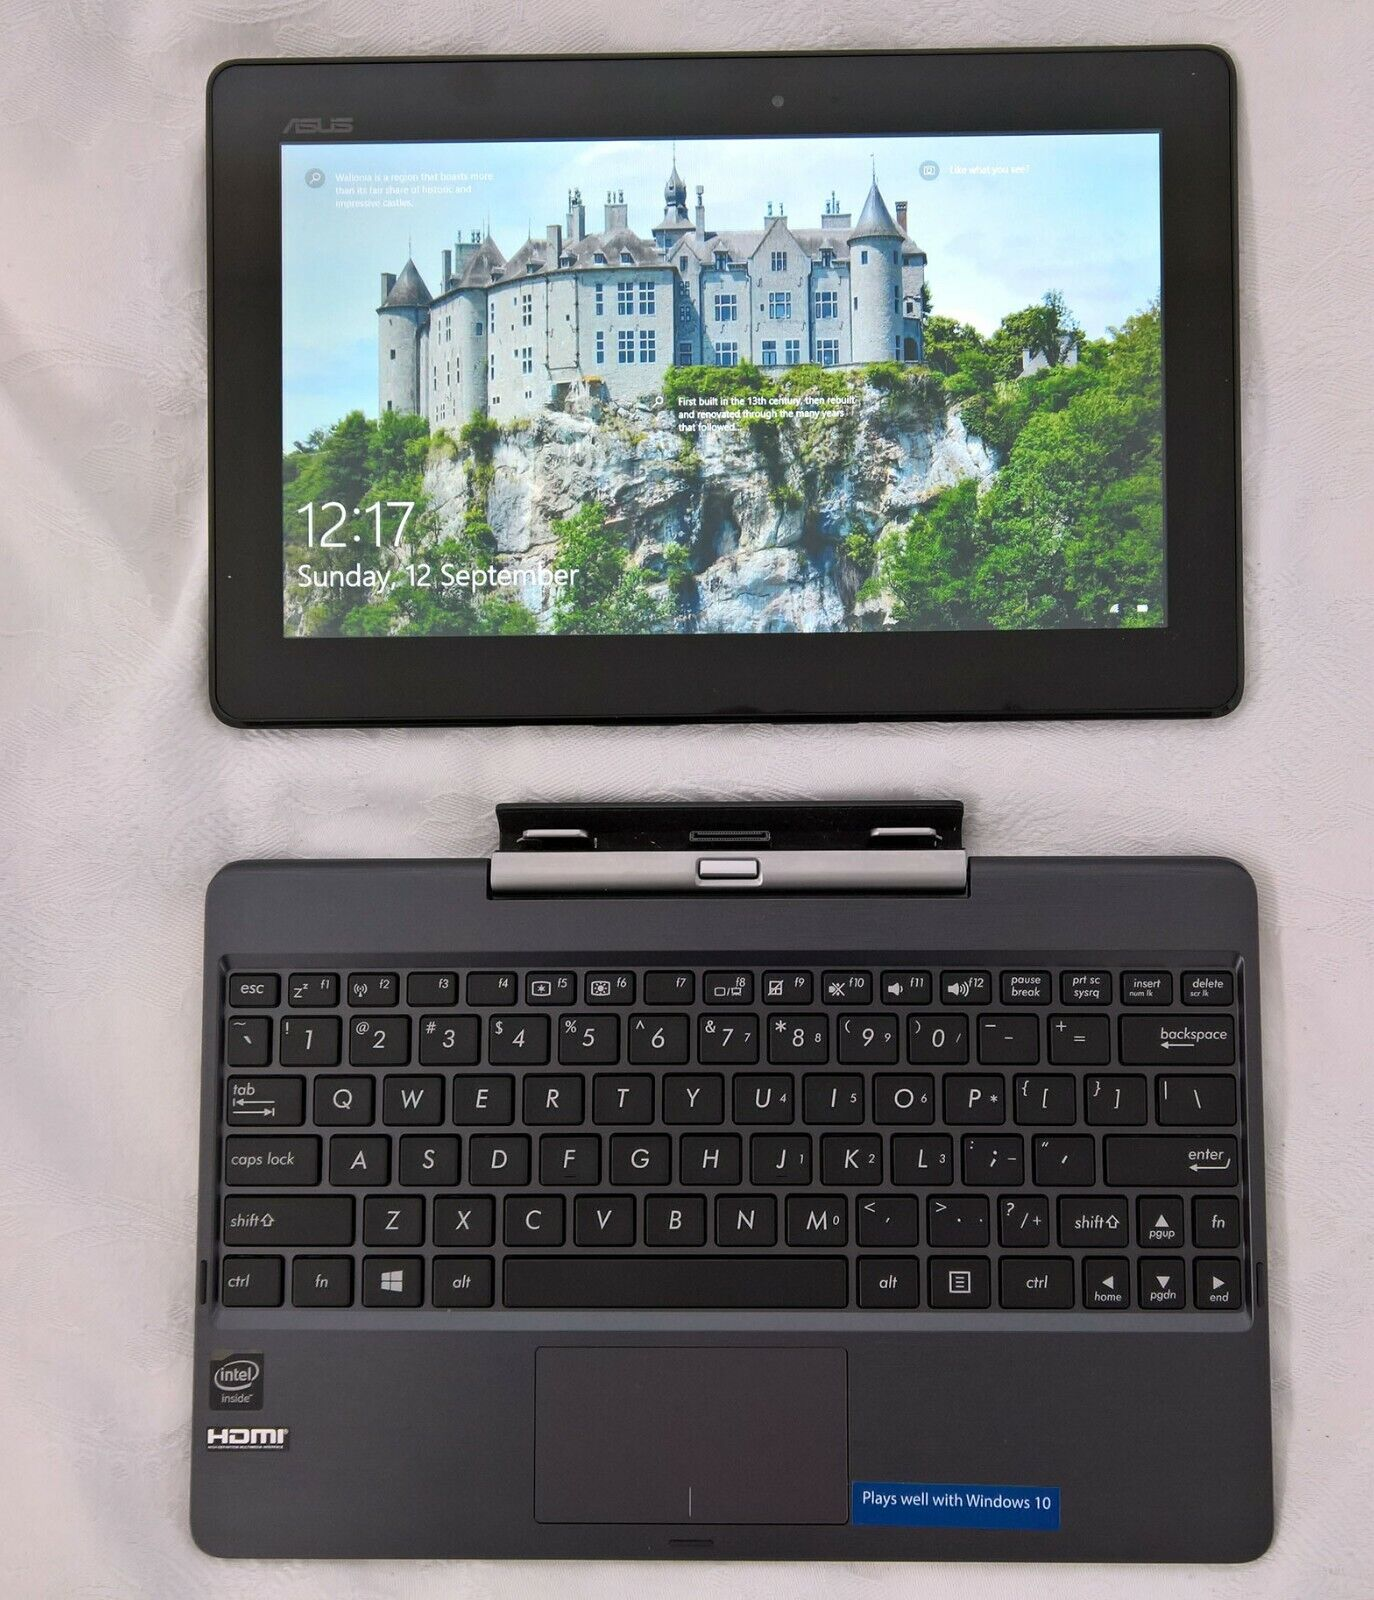 Laptop Windows - Asus t100 64gb Netbook, Windows 10, as-new condition, FREE case & 32Gb micro-sd